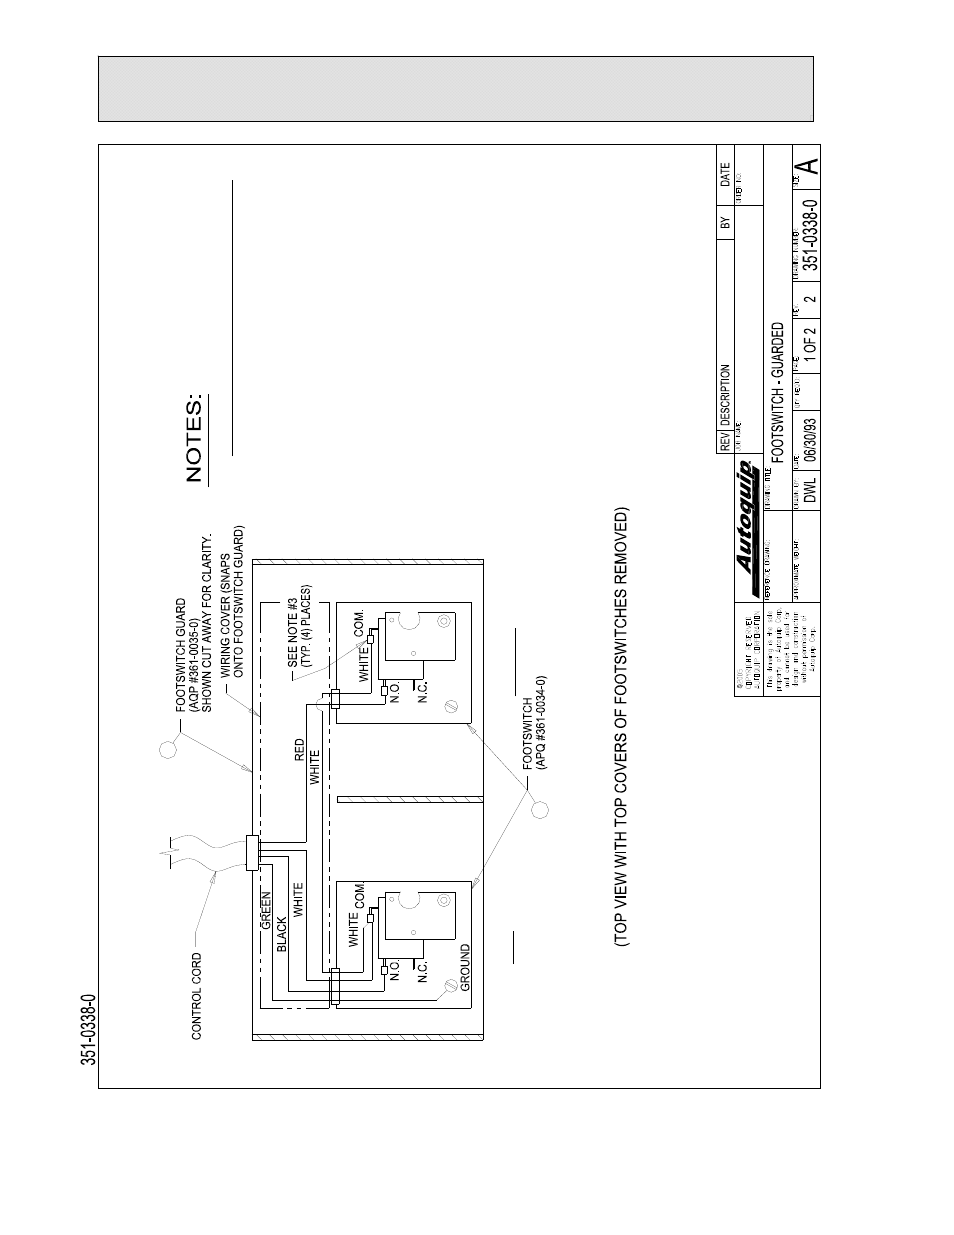 General Maintenance  Figure 8a  Footswitch Wiring Diagram